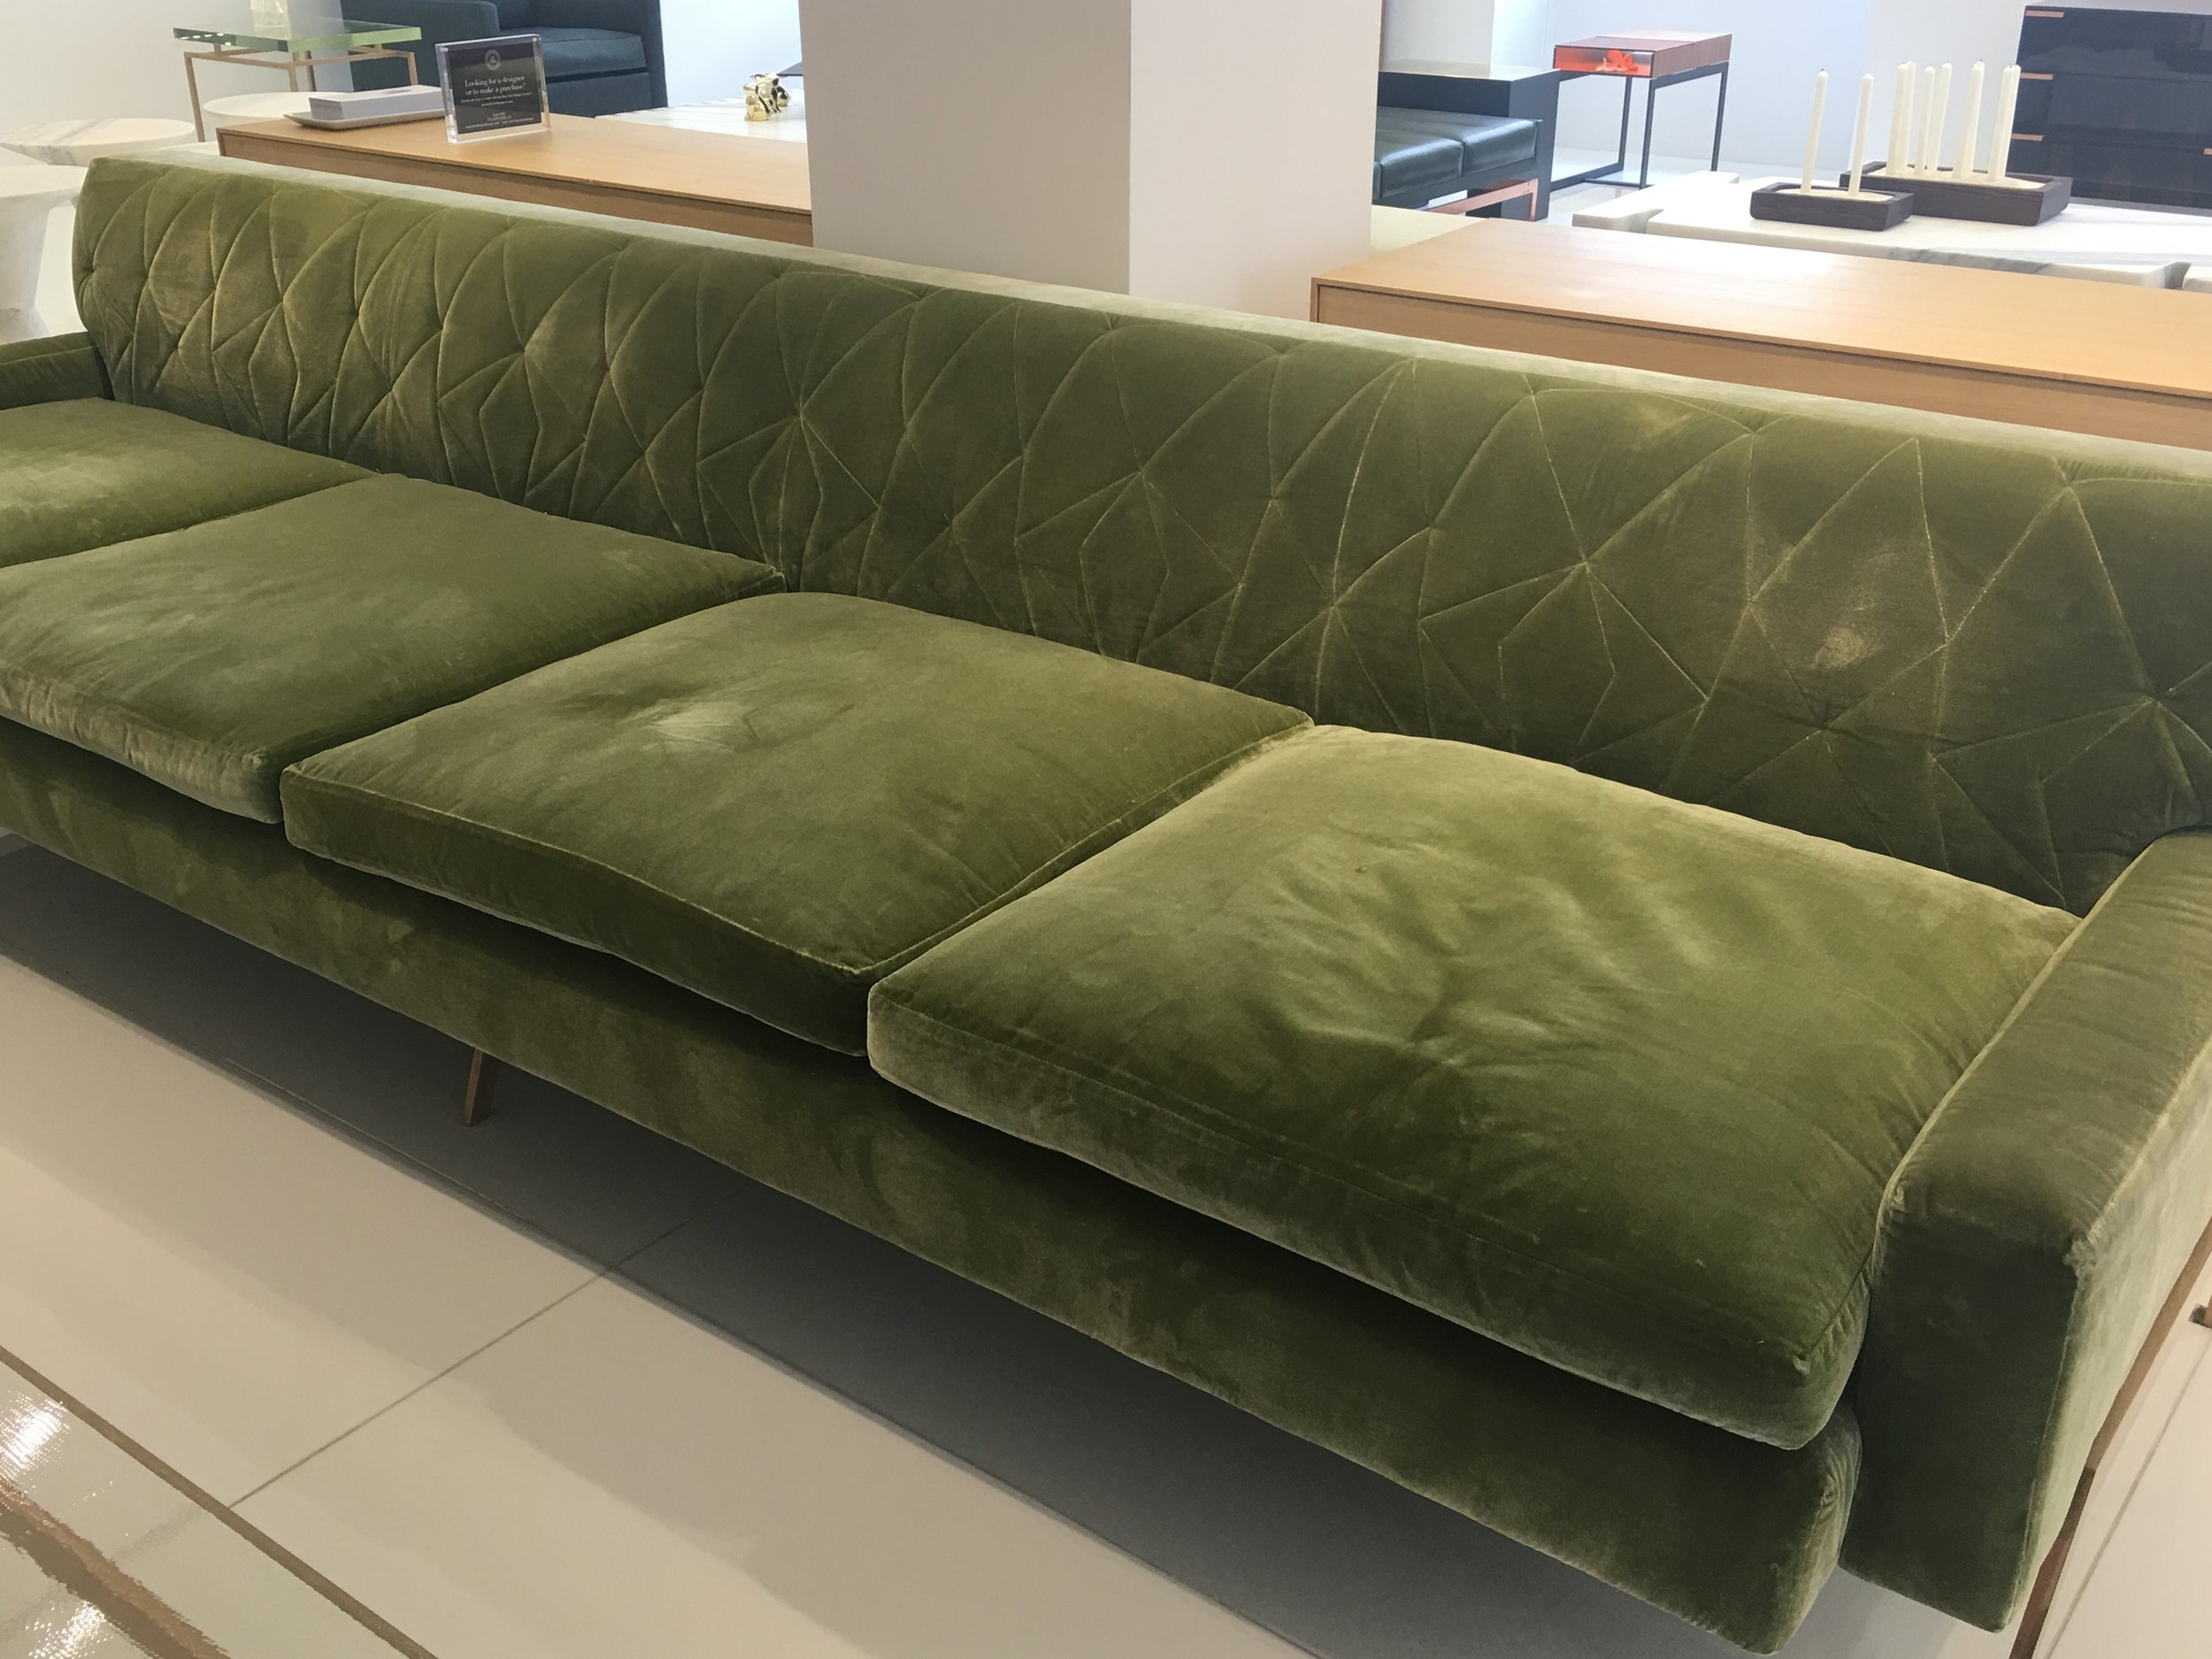 GREEN SOFA AT KGBL SHOWROOM - 200 LEX